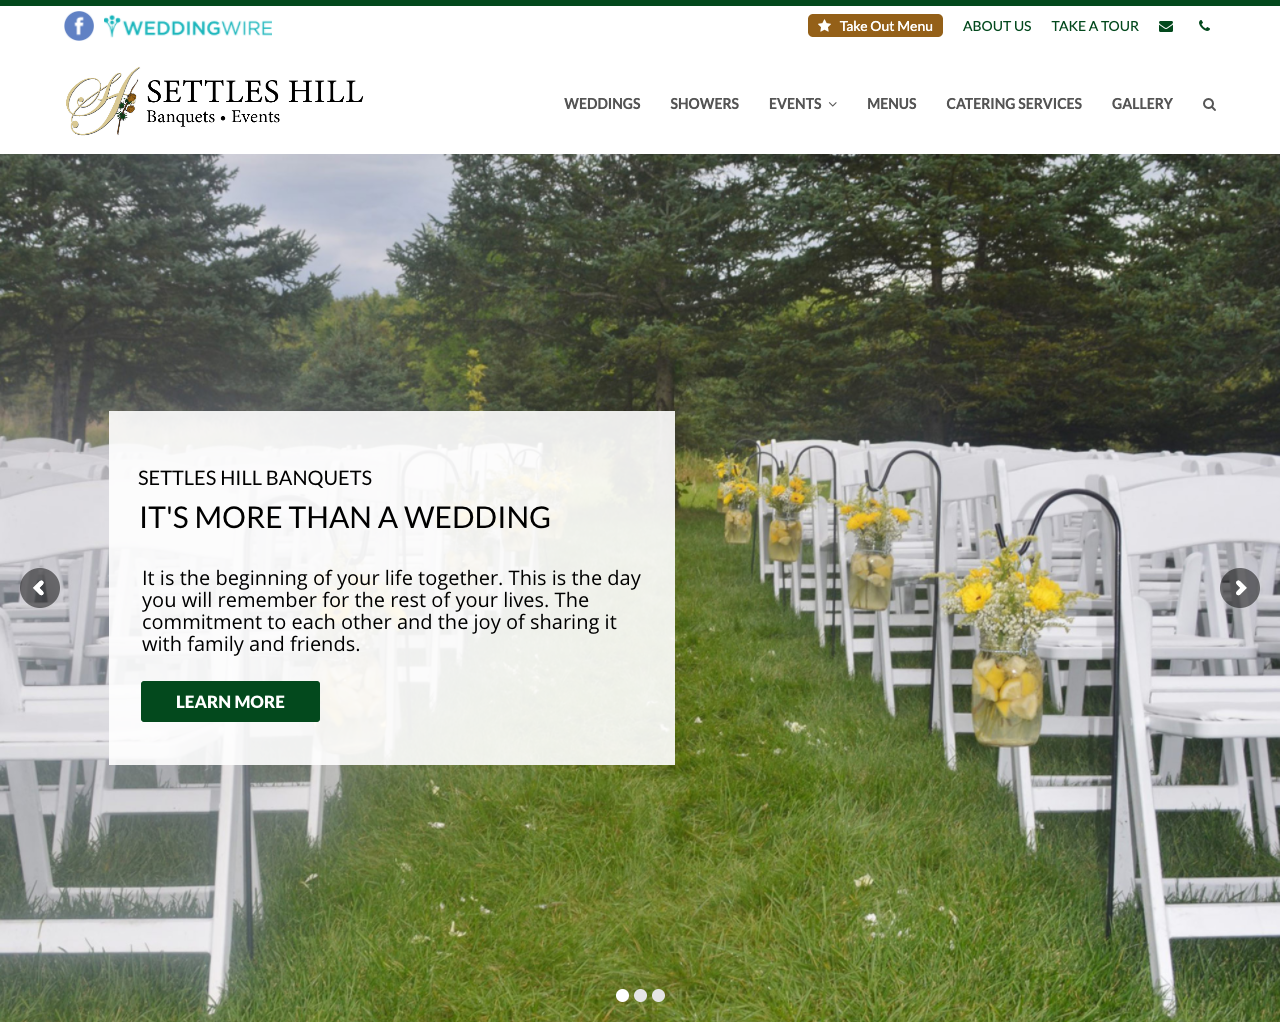 Settles Hill Banquets & Events - Content and Web design